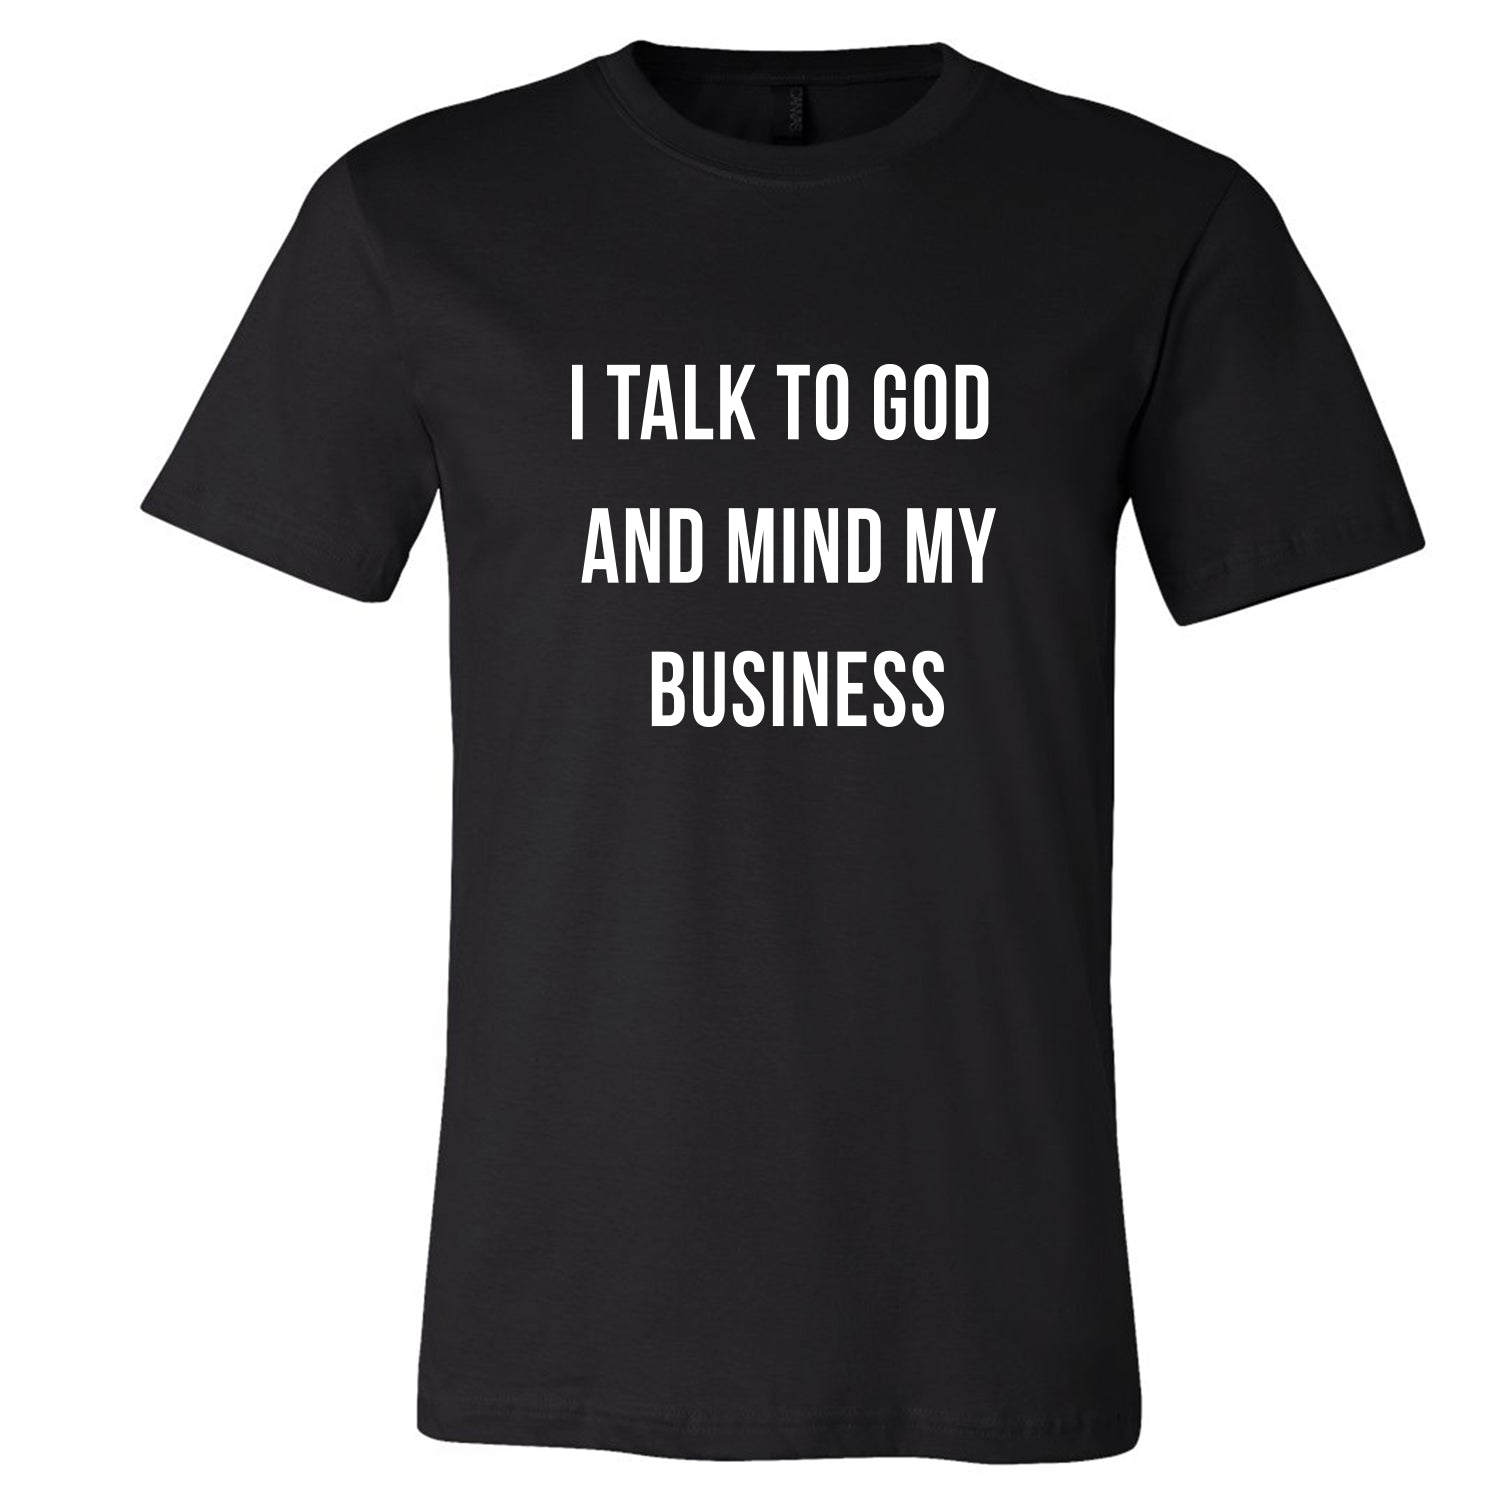 I Talk to GOD + Mind My Business